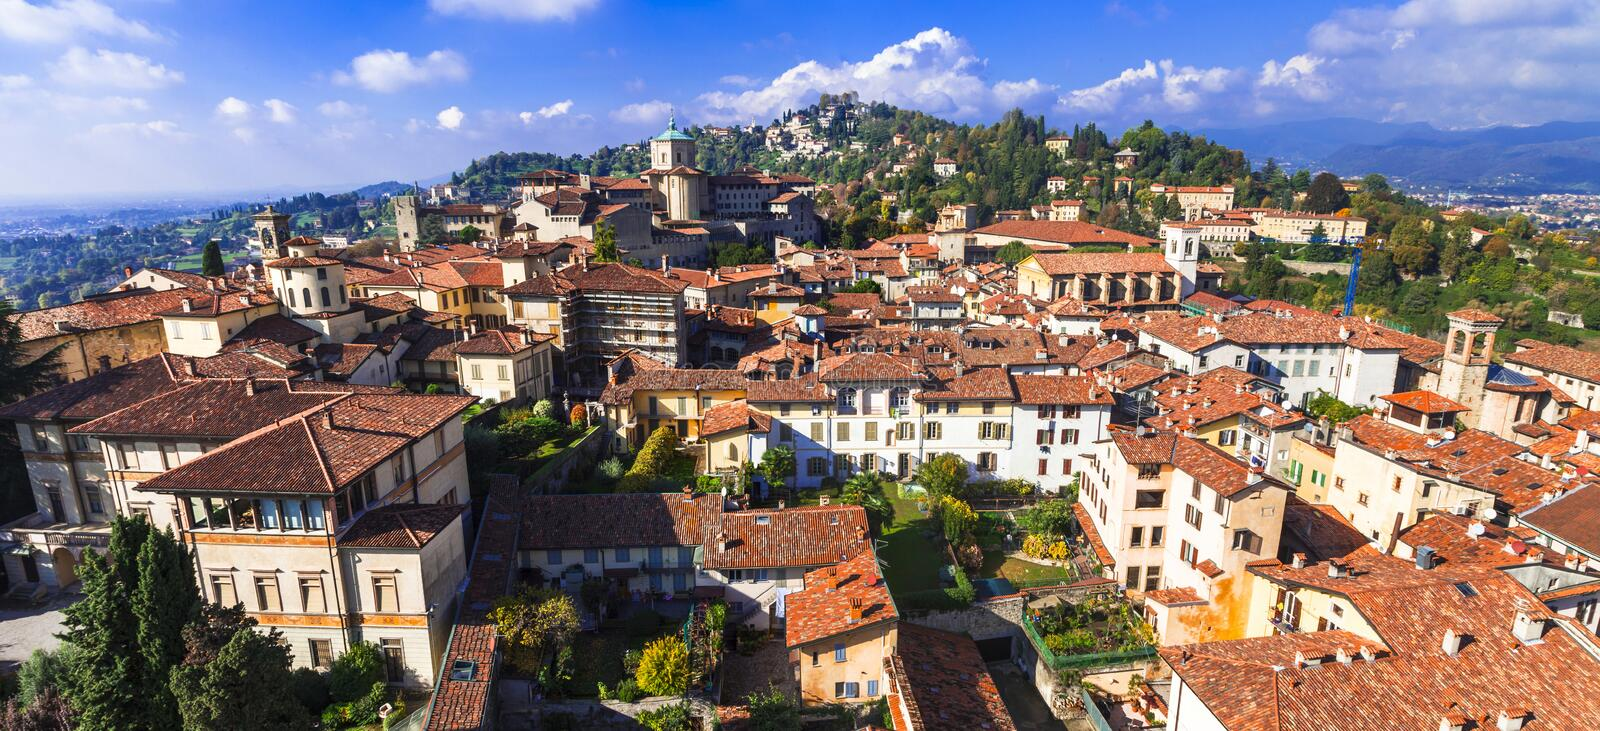 Travel and landmarks of northern Italy - Bergamo medieval town royalty free stock photography